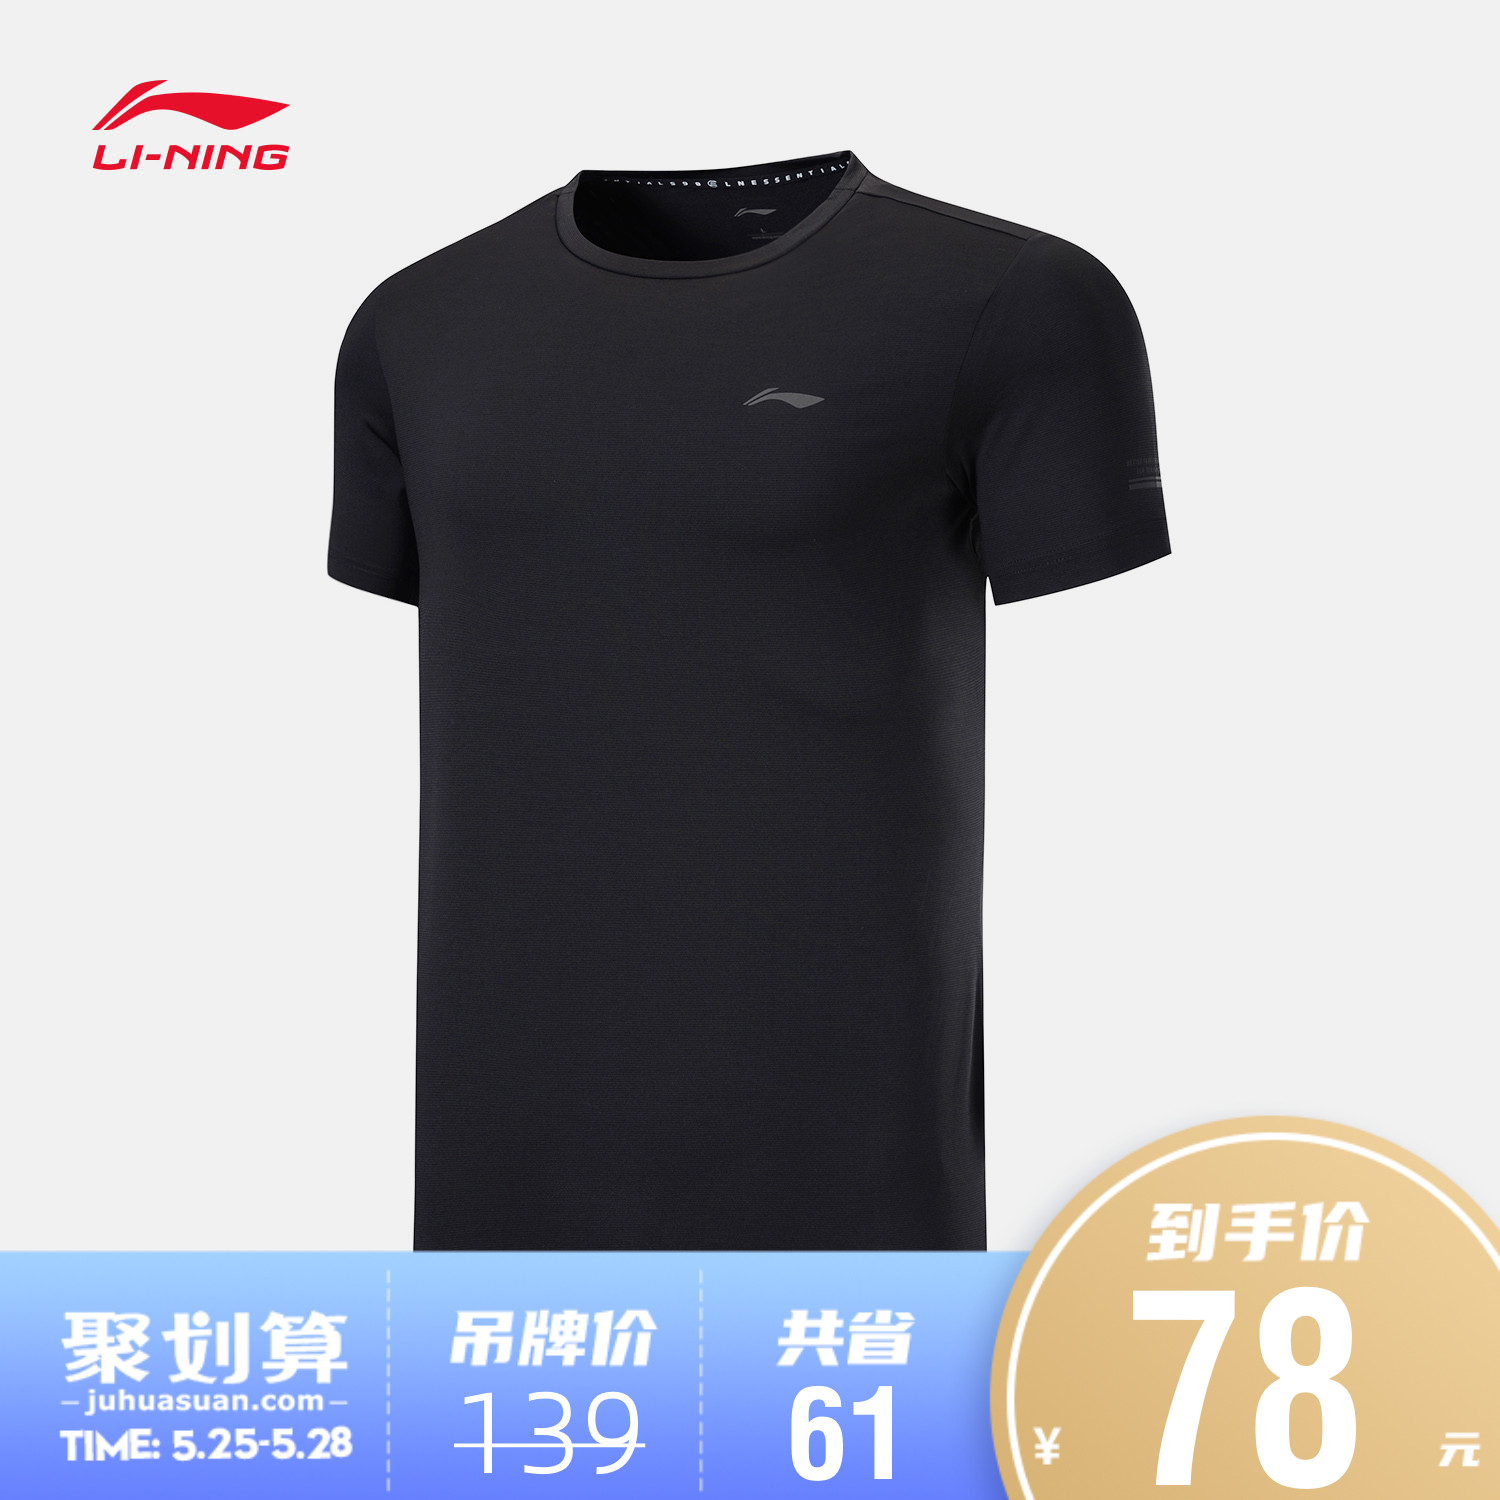 Li Ning short sleeve t-shirt men's summer round neck solid color breathable half sleeve quick drying top official website authentic T-shirt